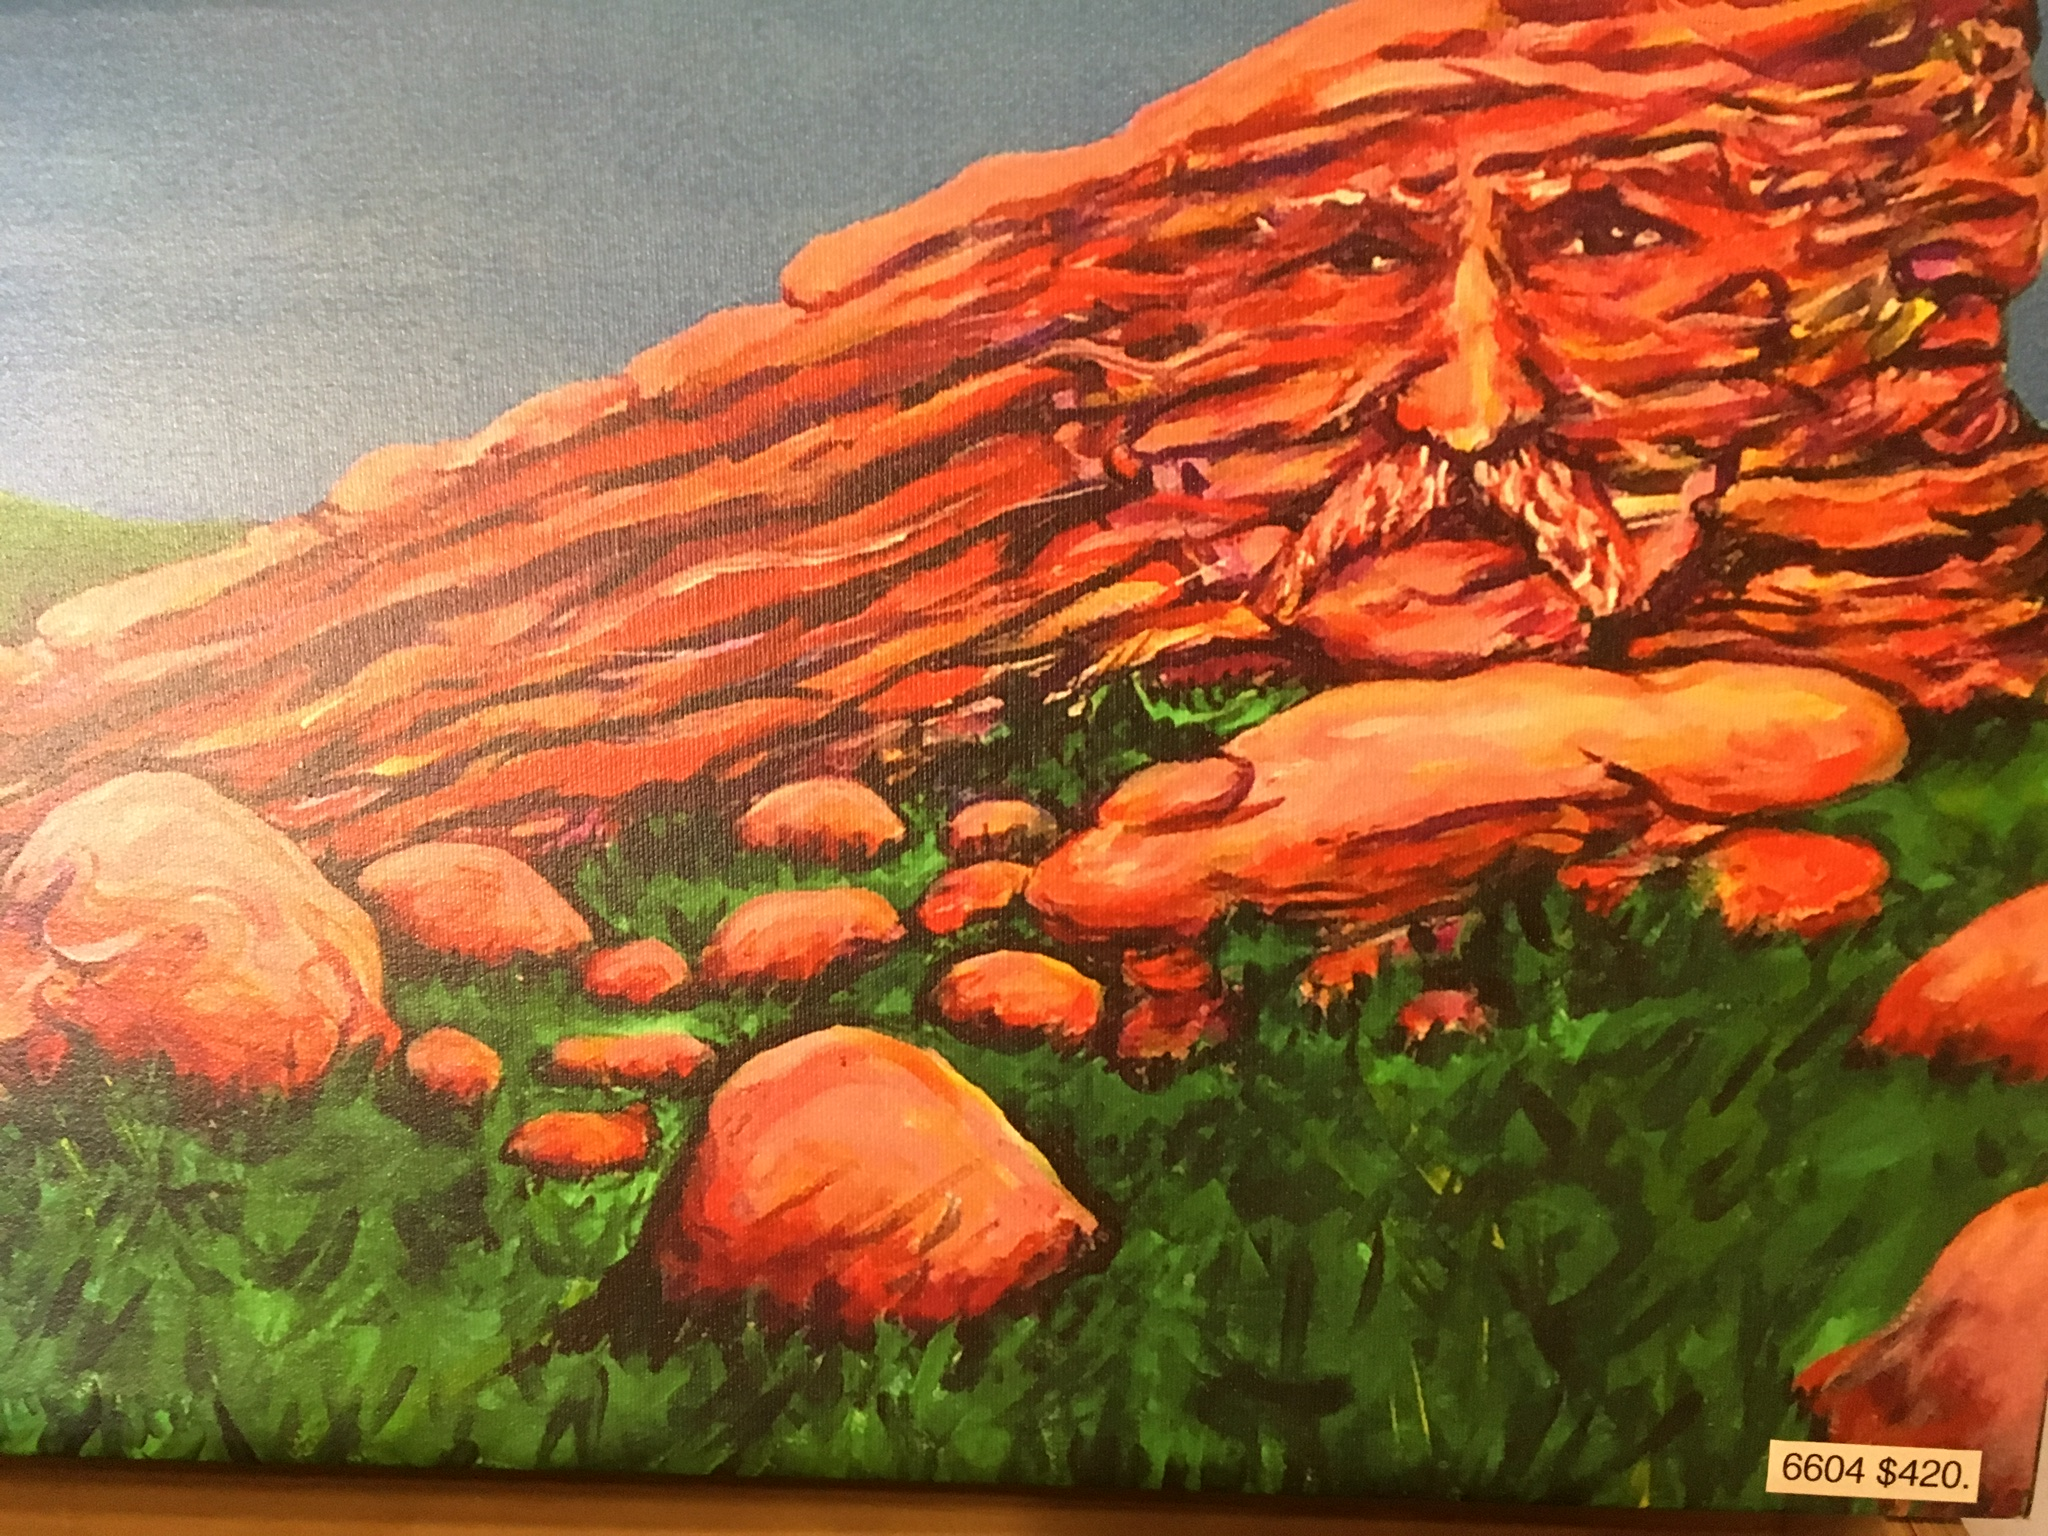 Red Rocks Amphitheater Panting with face